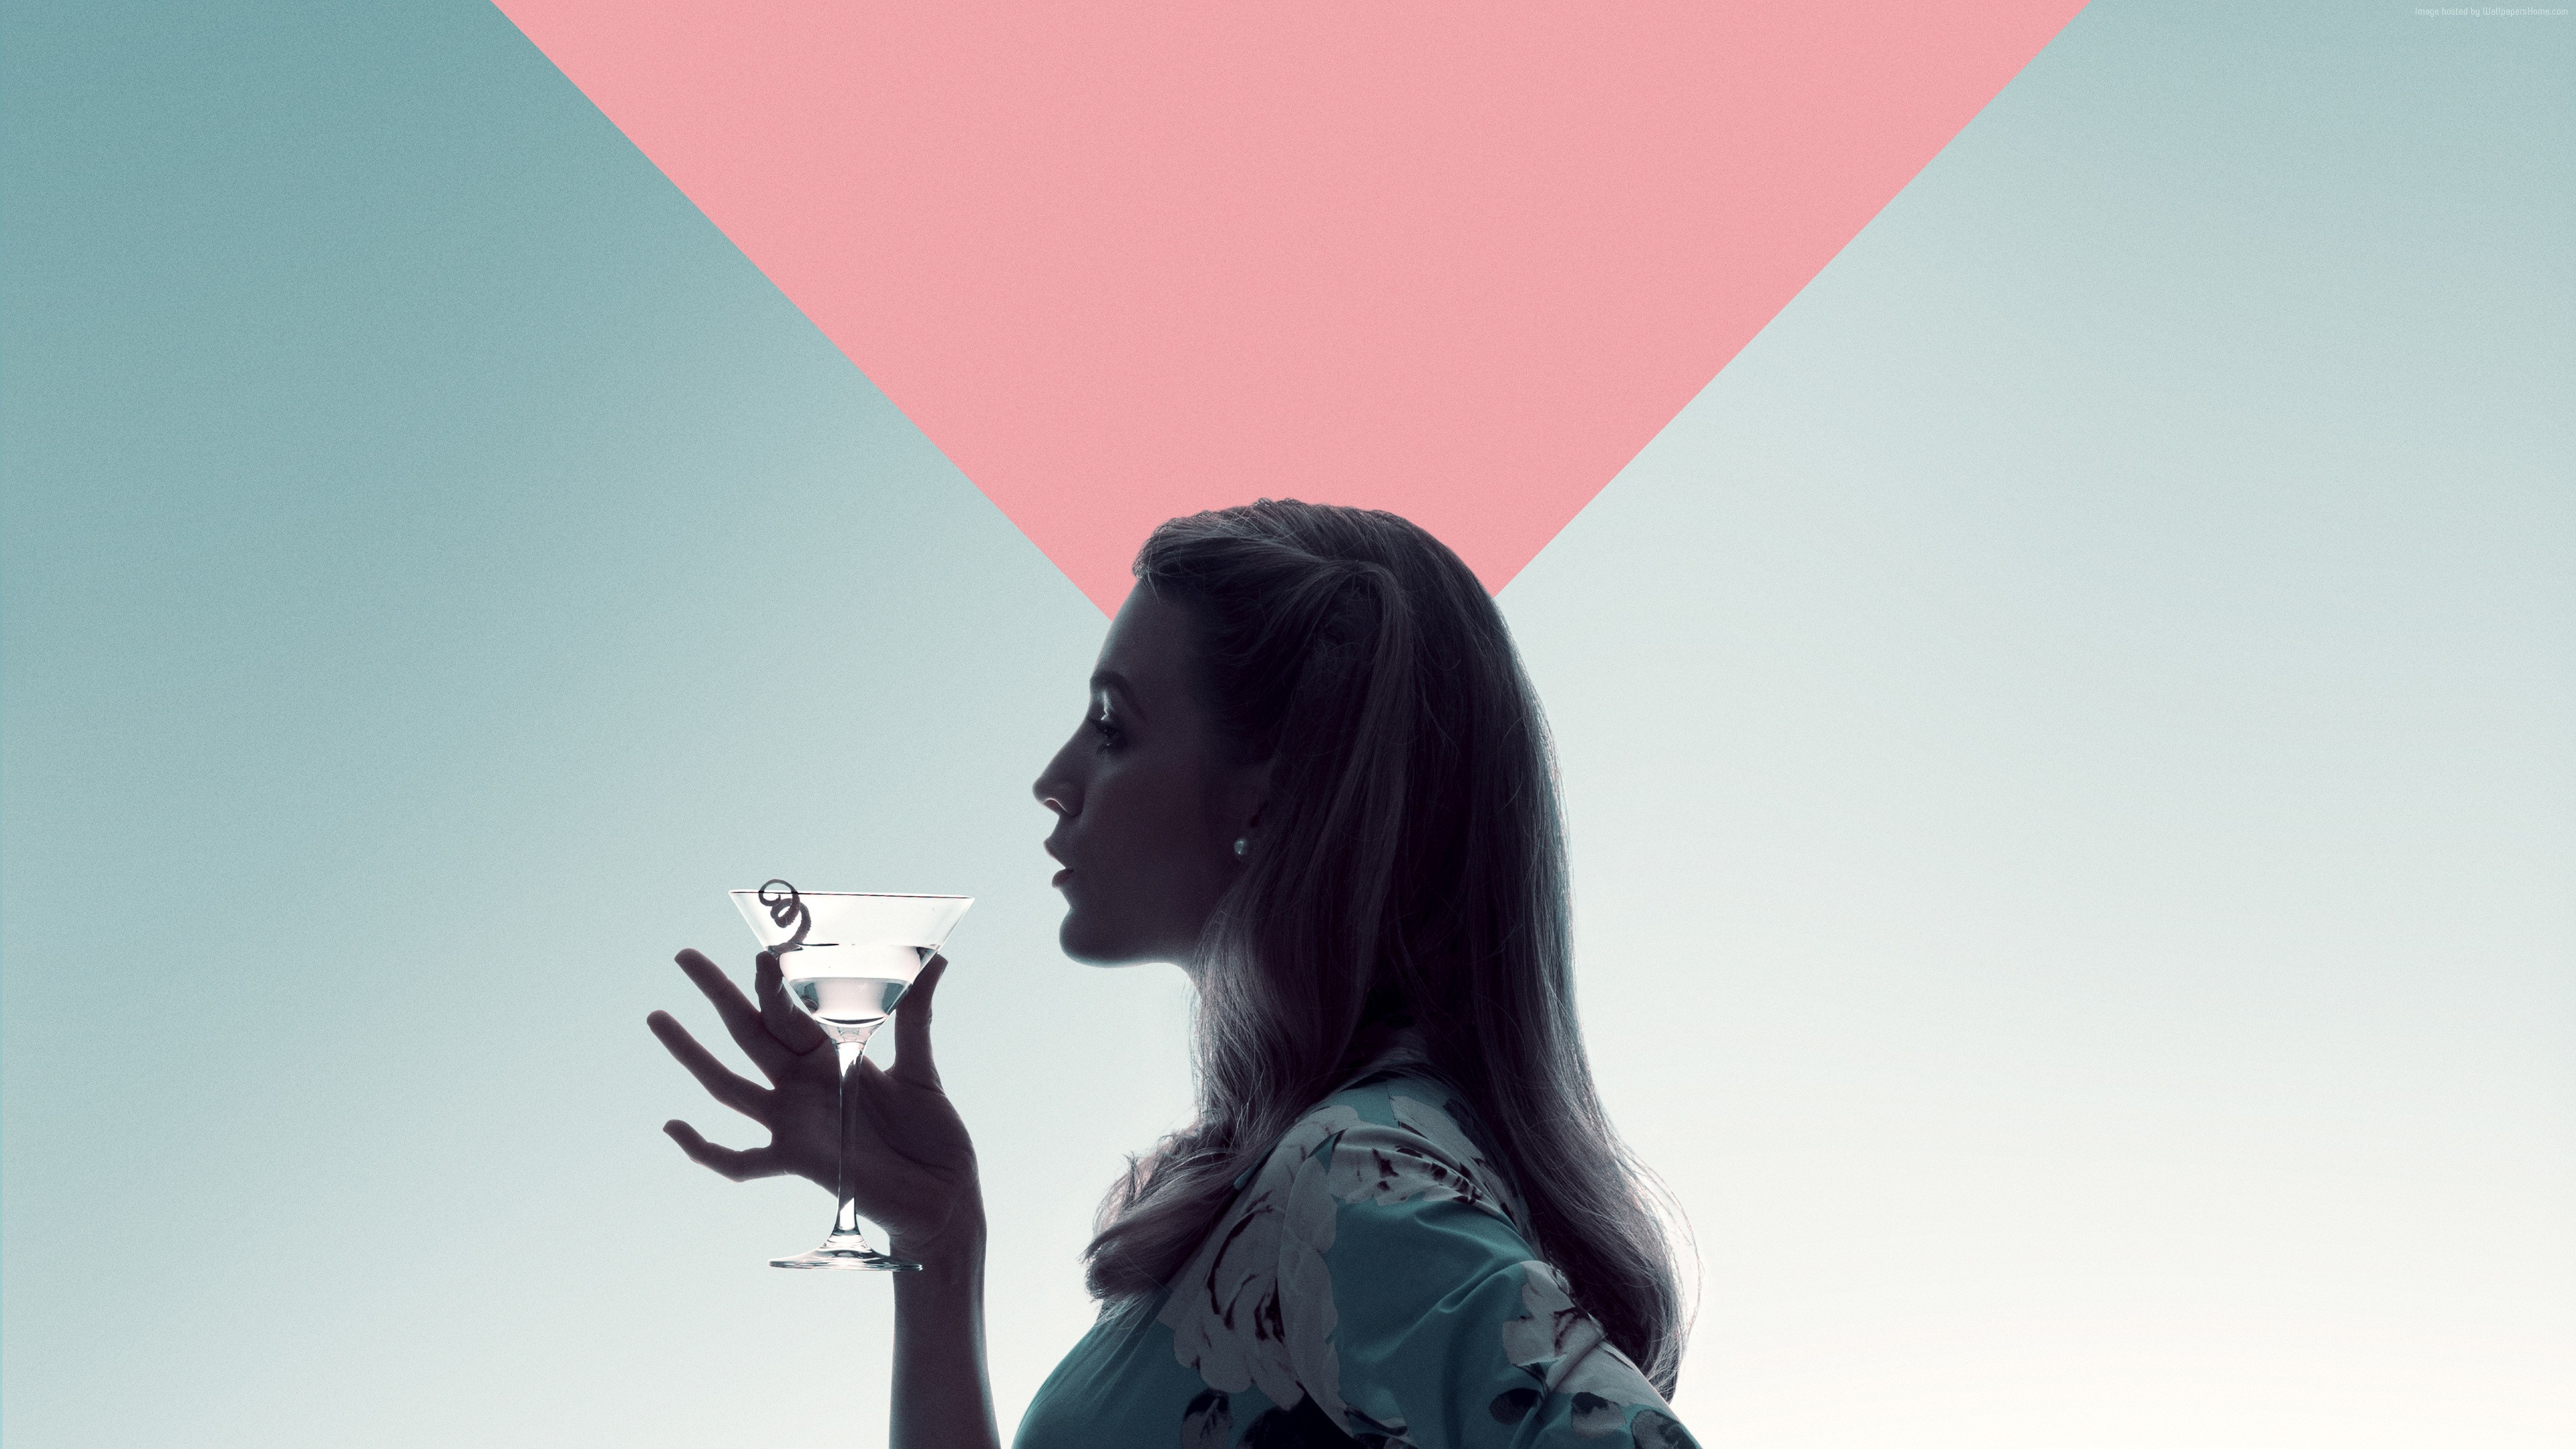 Wallpaper A Simple Favor, Blake Lively, 4K, Movies